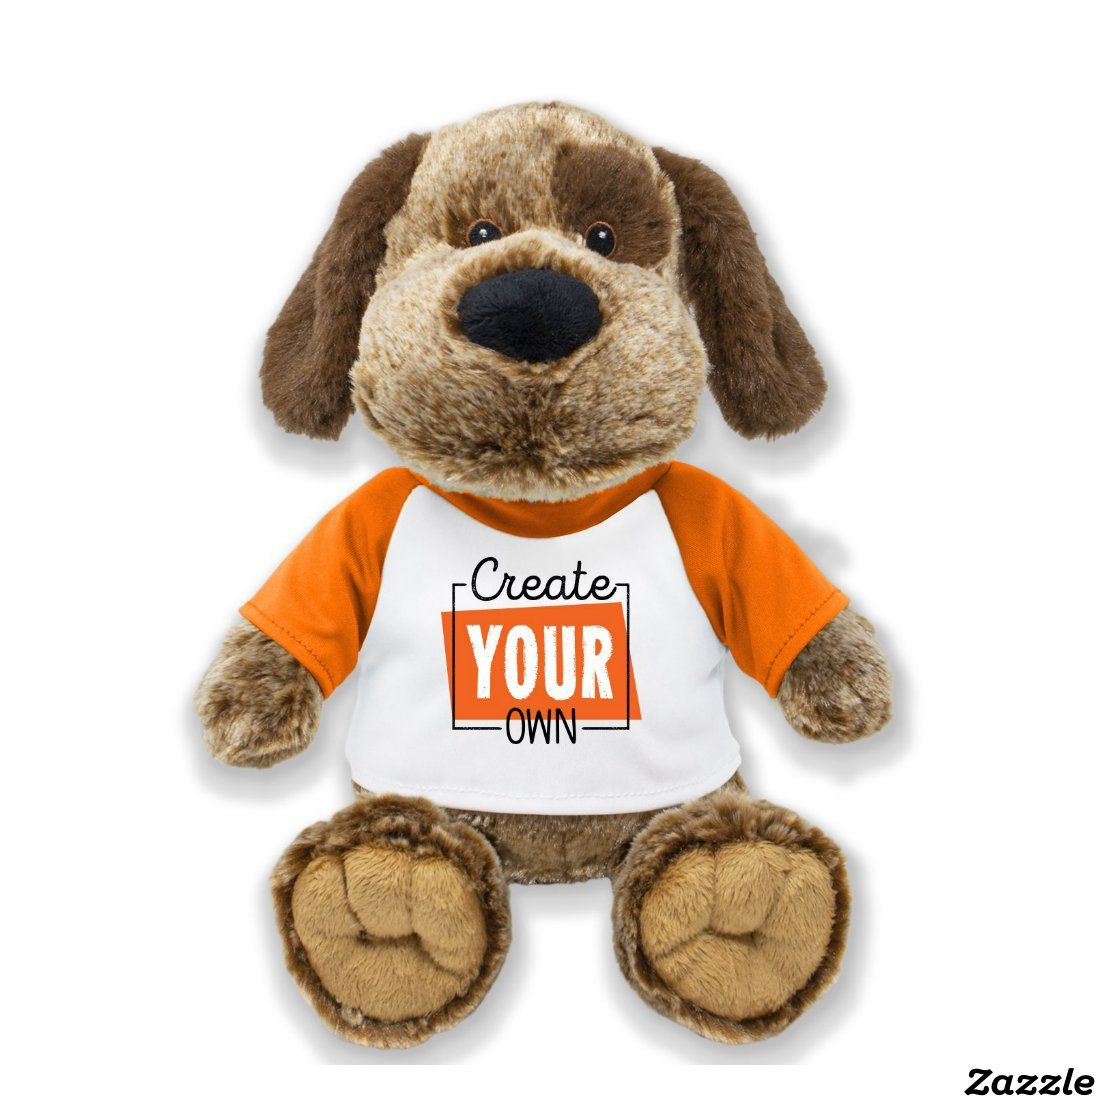 Create Your Own Stuffed Animal Zazzle Com Plush Animals Personalized Stuffed Animals Dogs And Puppies [ 1106 x 1106 Pixel ]